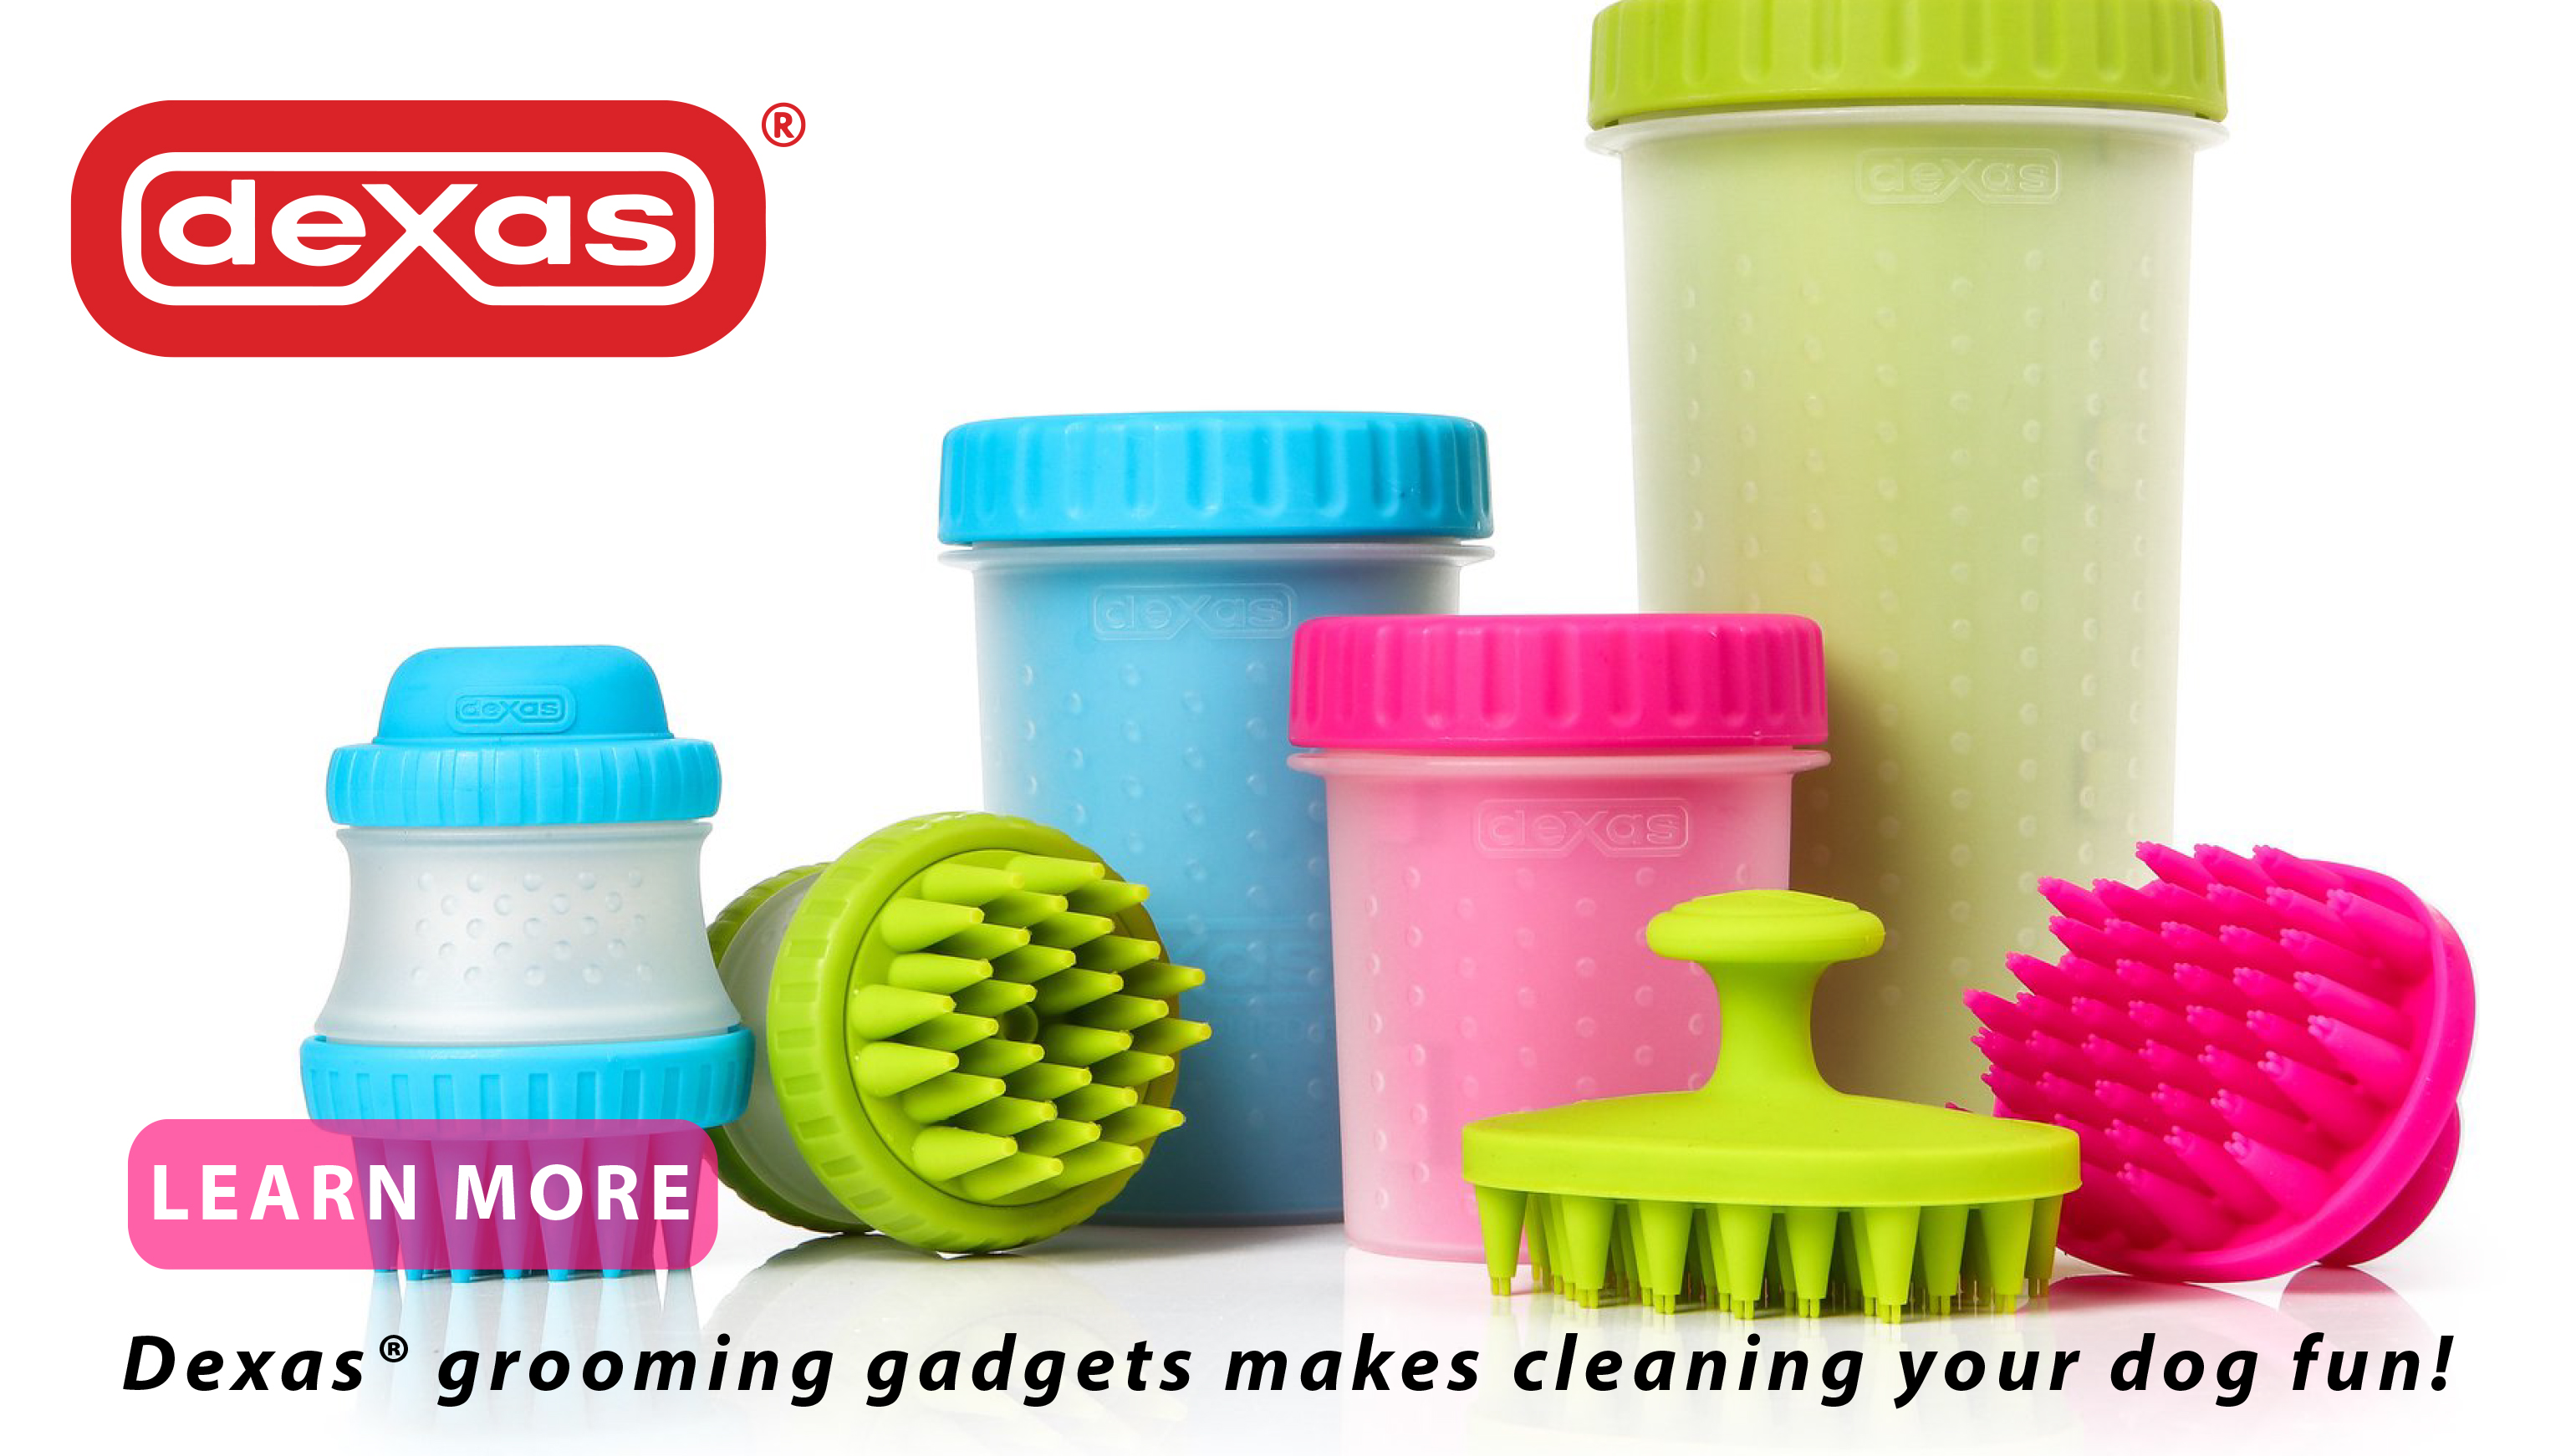 New Pet Products from Dexas at JMI Pet Supply